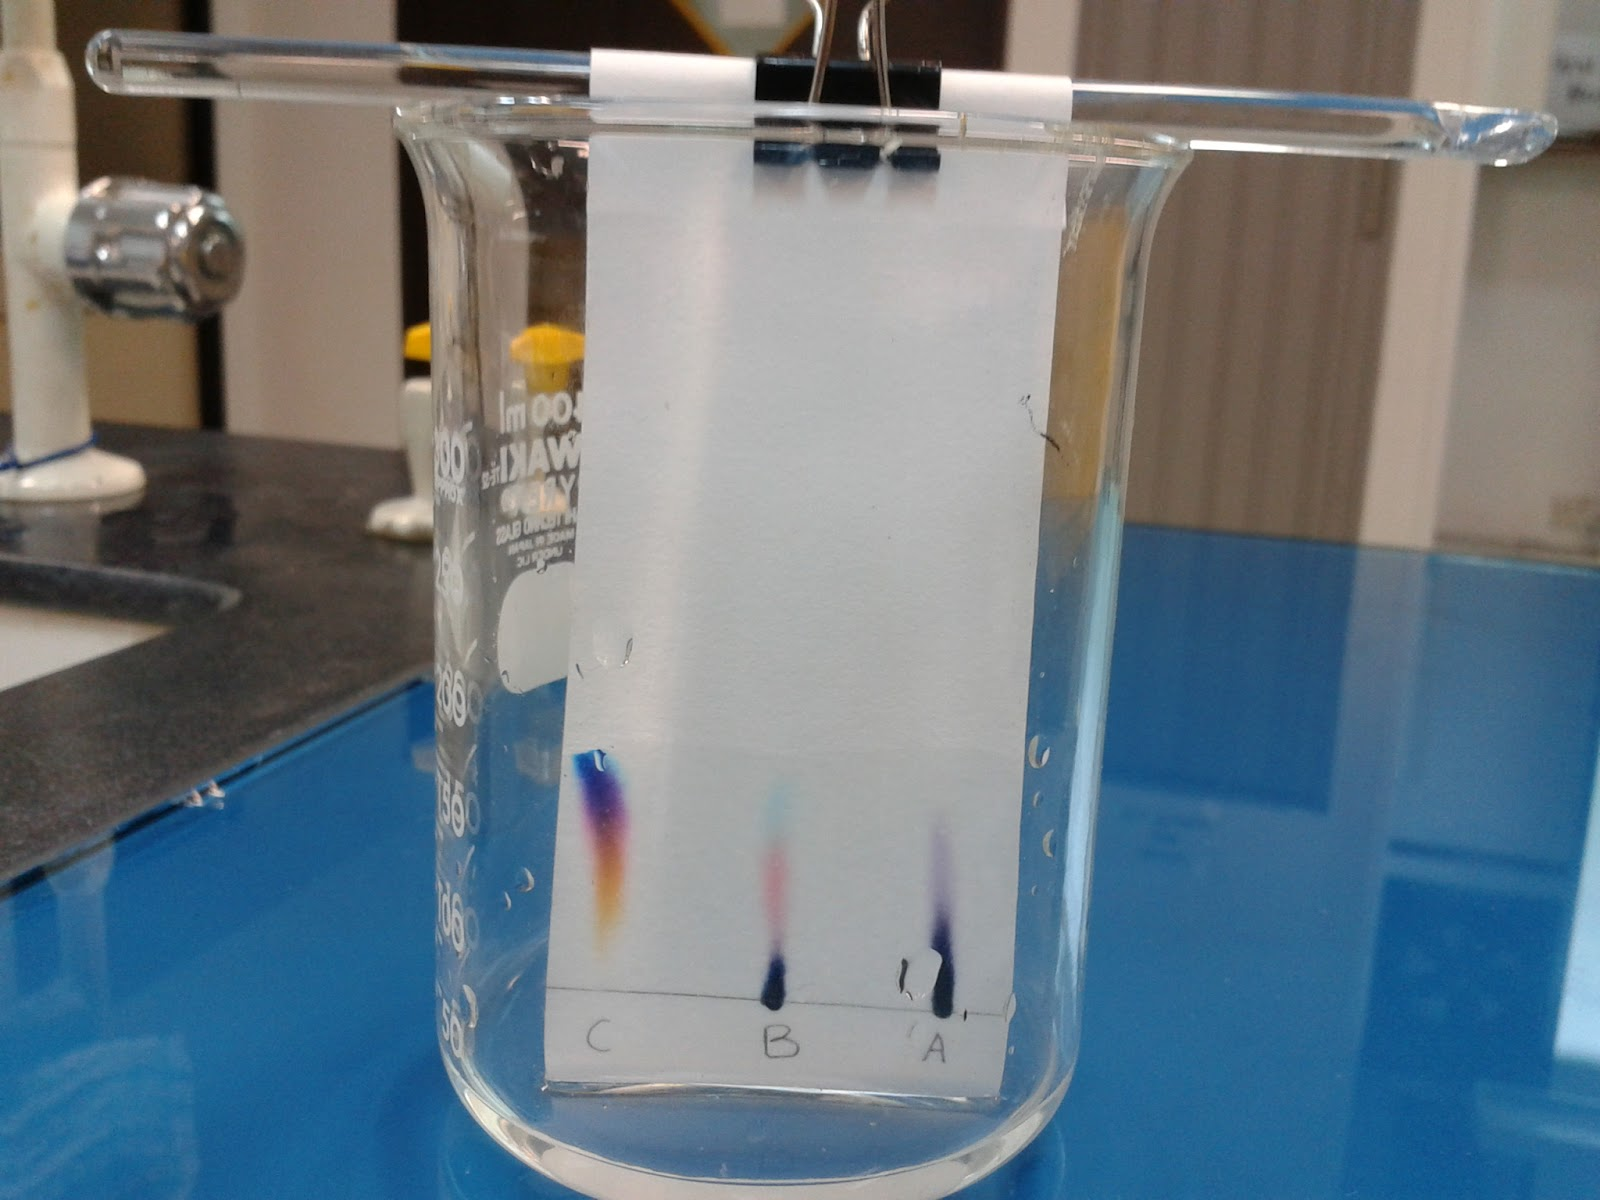 experiment chromotography Paper chromatography lab chromatography is a method for analyzing complex mixtures by separating them into the chemicals from which they are made.